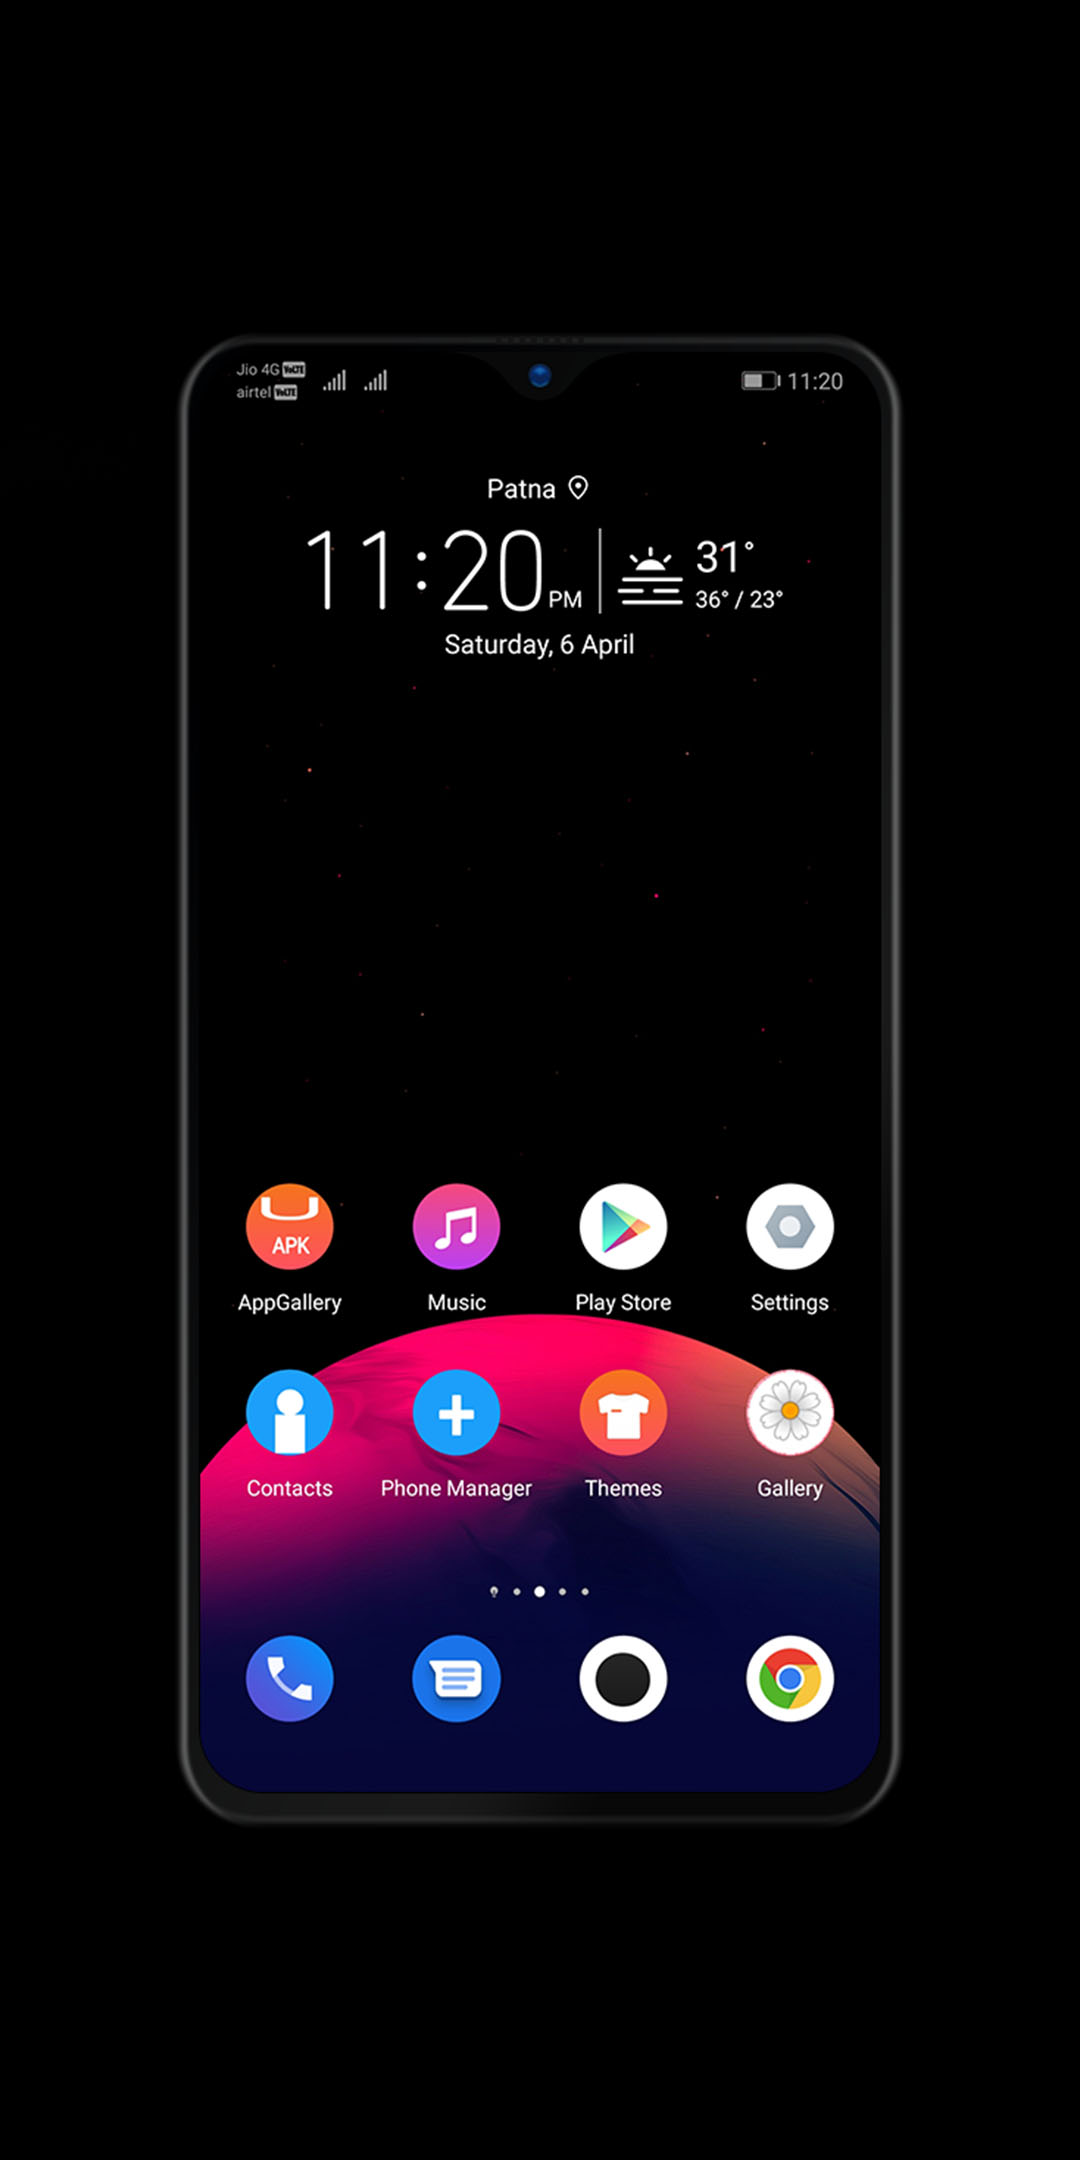 New Theme Android Q Dark Theme Now Available For Emui 5 8 9